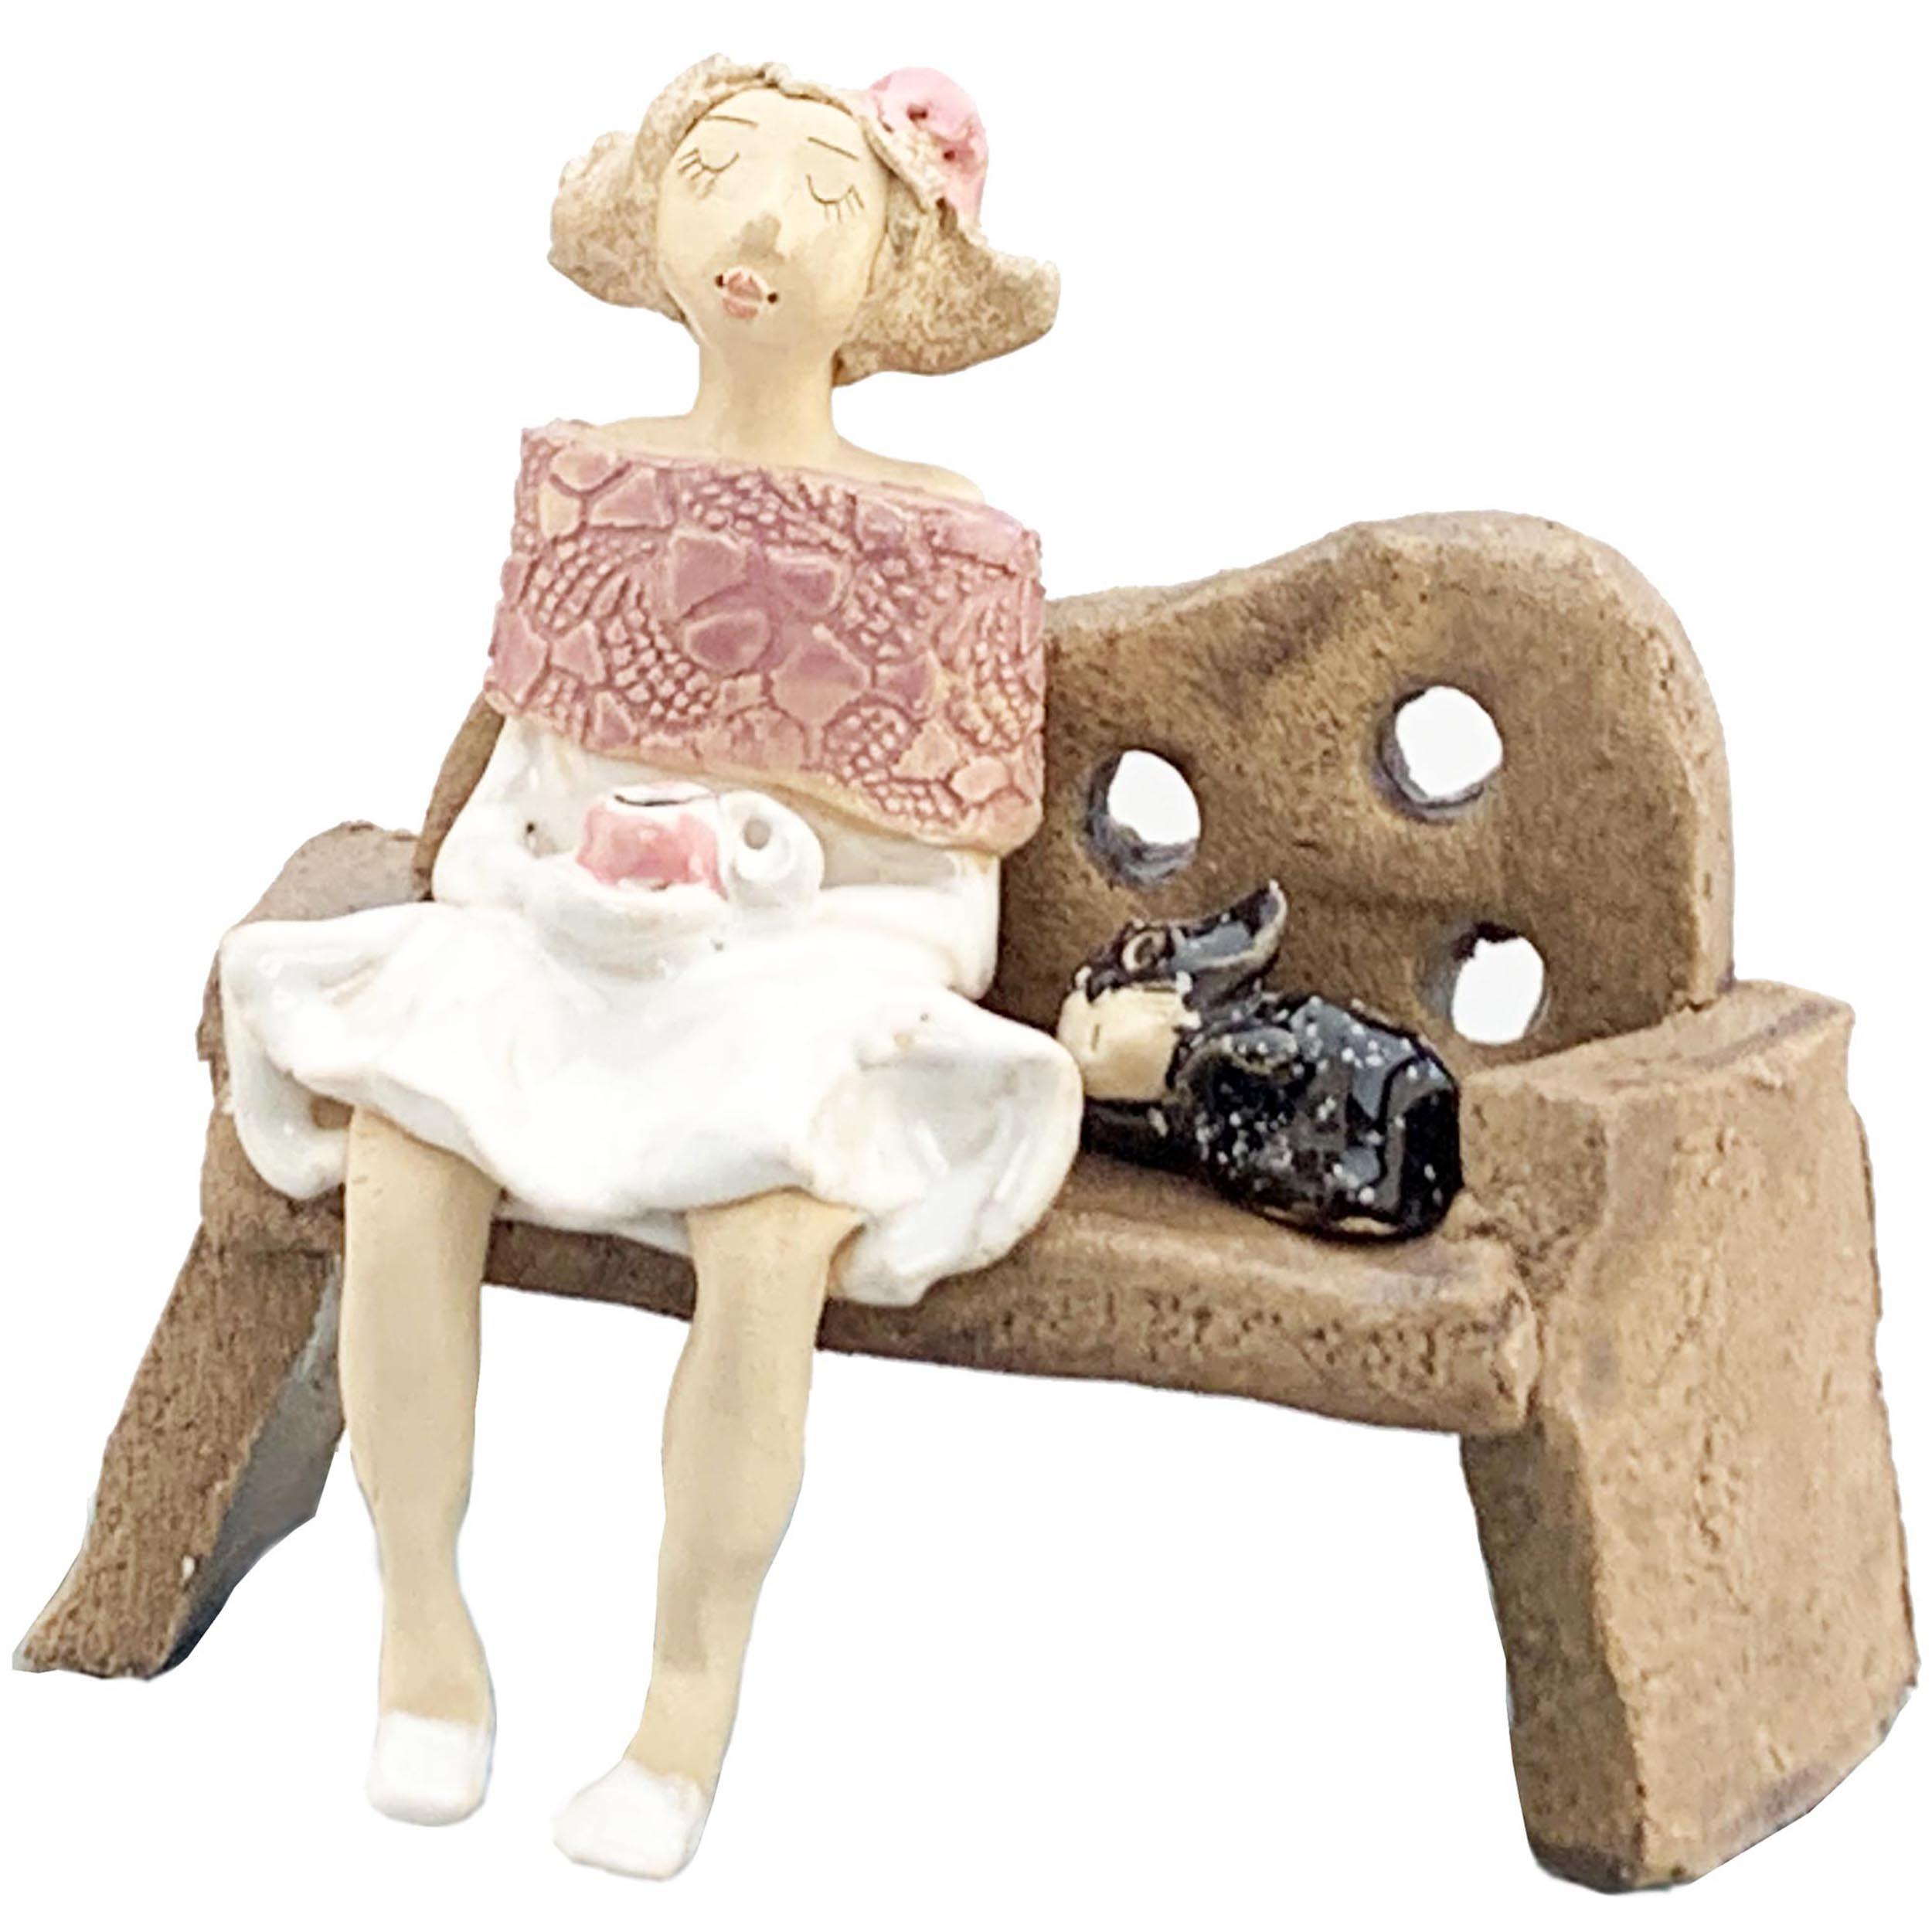 Quirky Ceramic Lady in Pink on a Bench with Black Cat